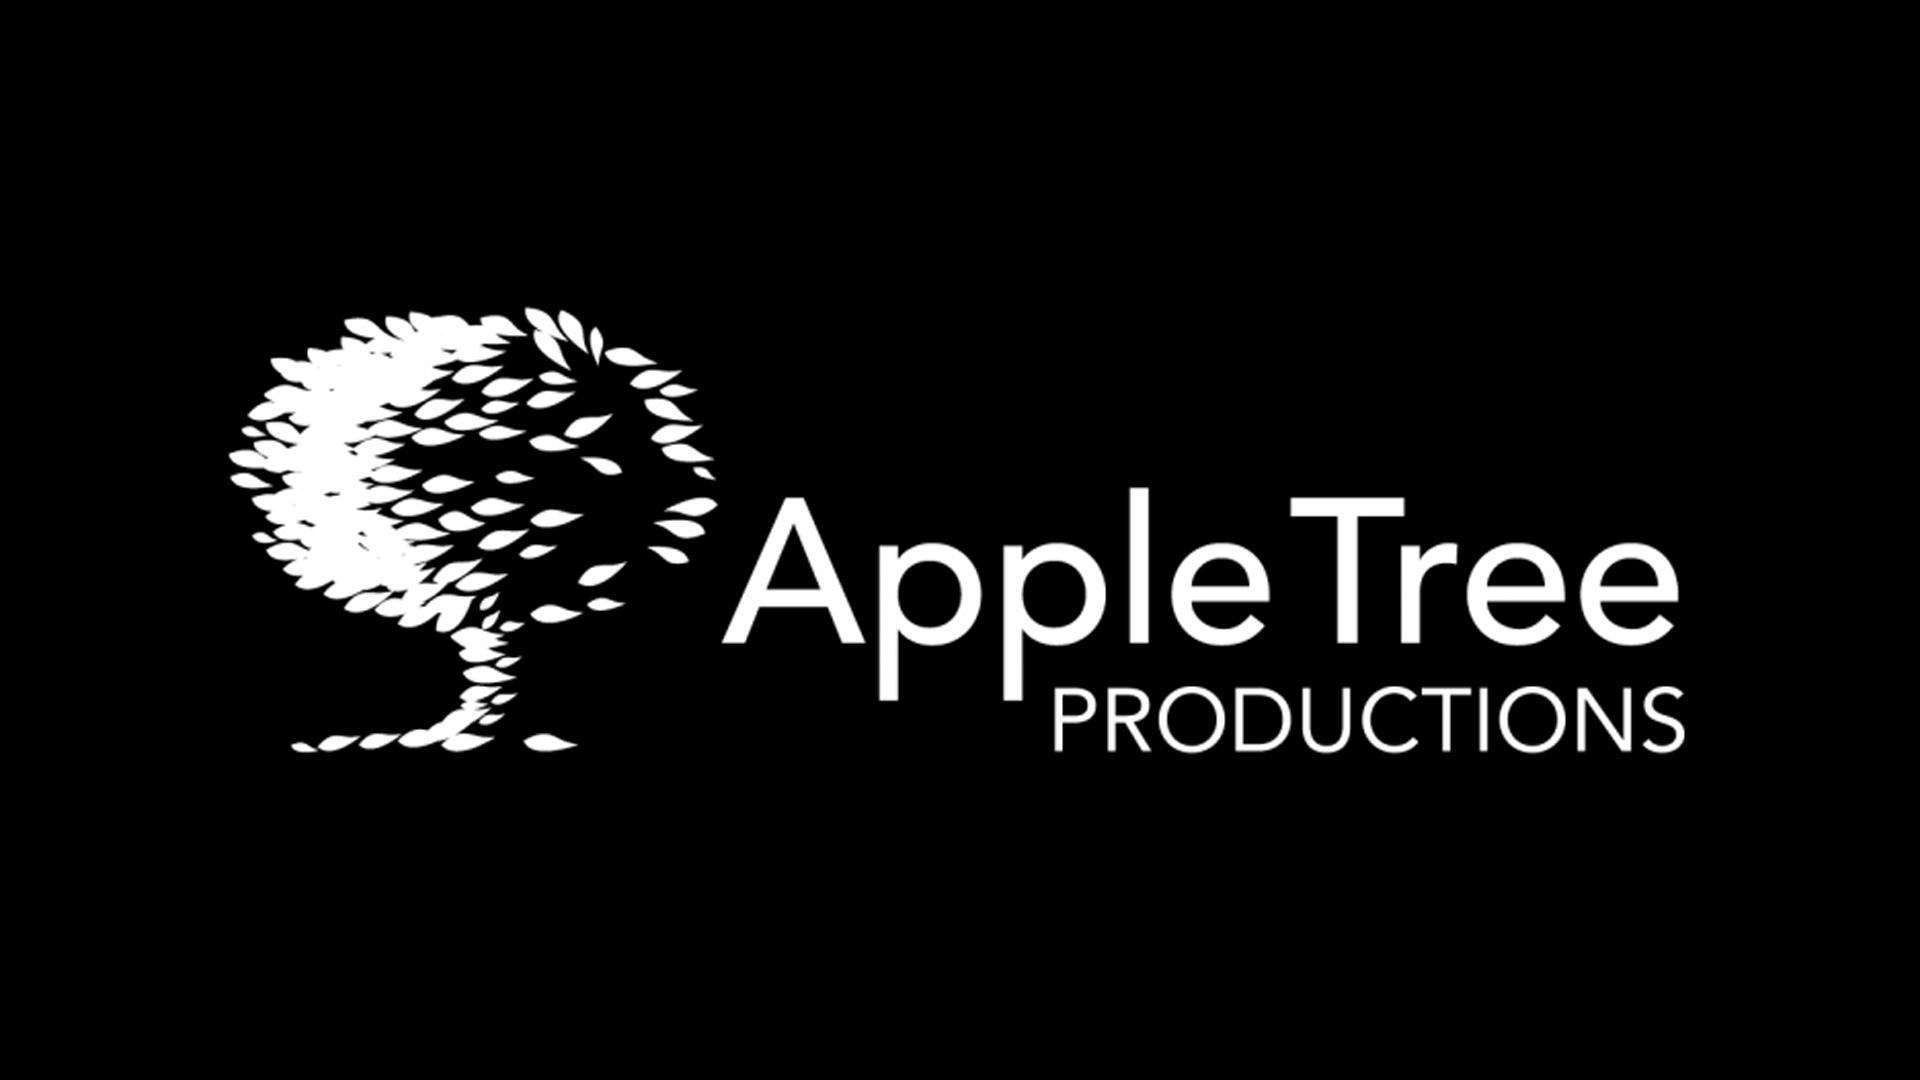 Apple Tree Productions   Apple Tree Productions is a Danish production company with focus on developing and producing drama series of high quality.